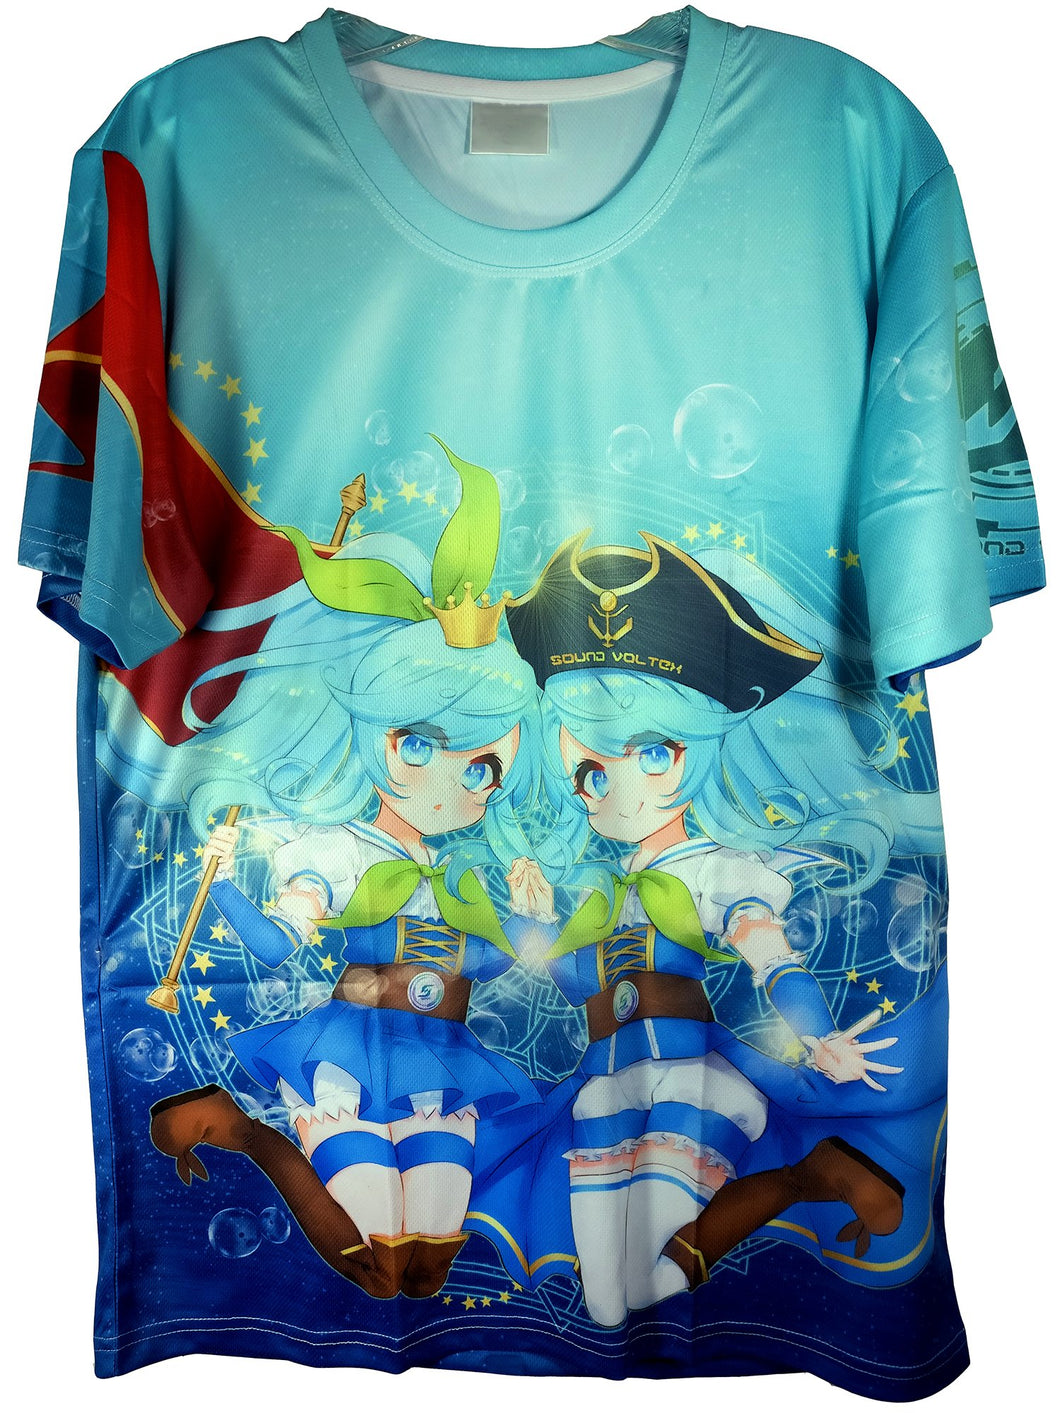 SDVX 4 NEAR & NOAH KAC SHIRT